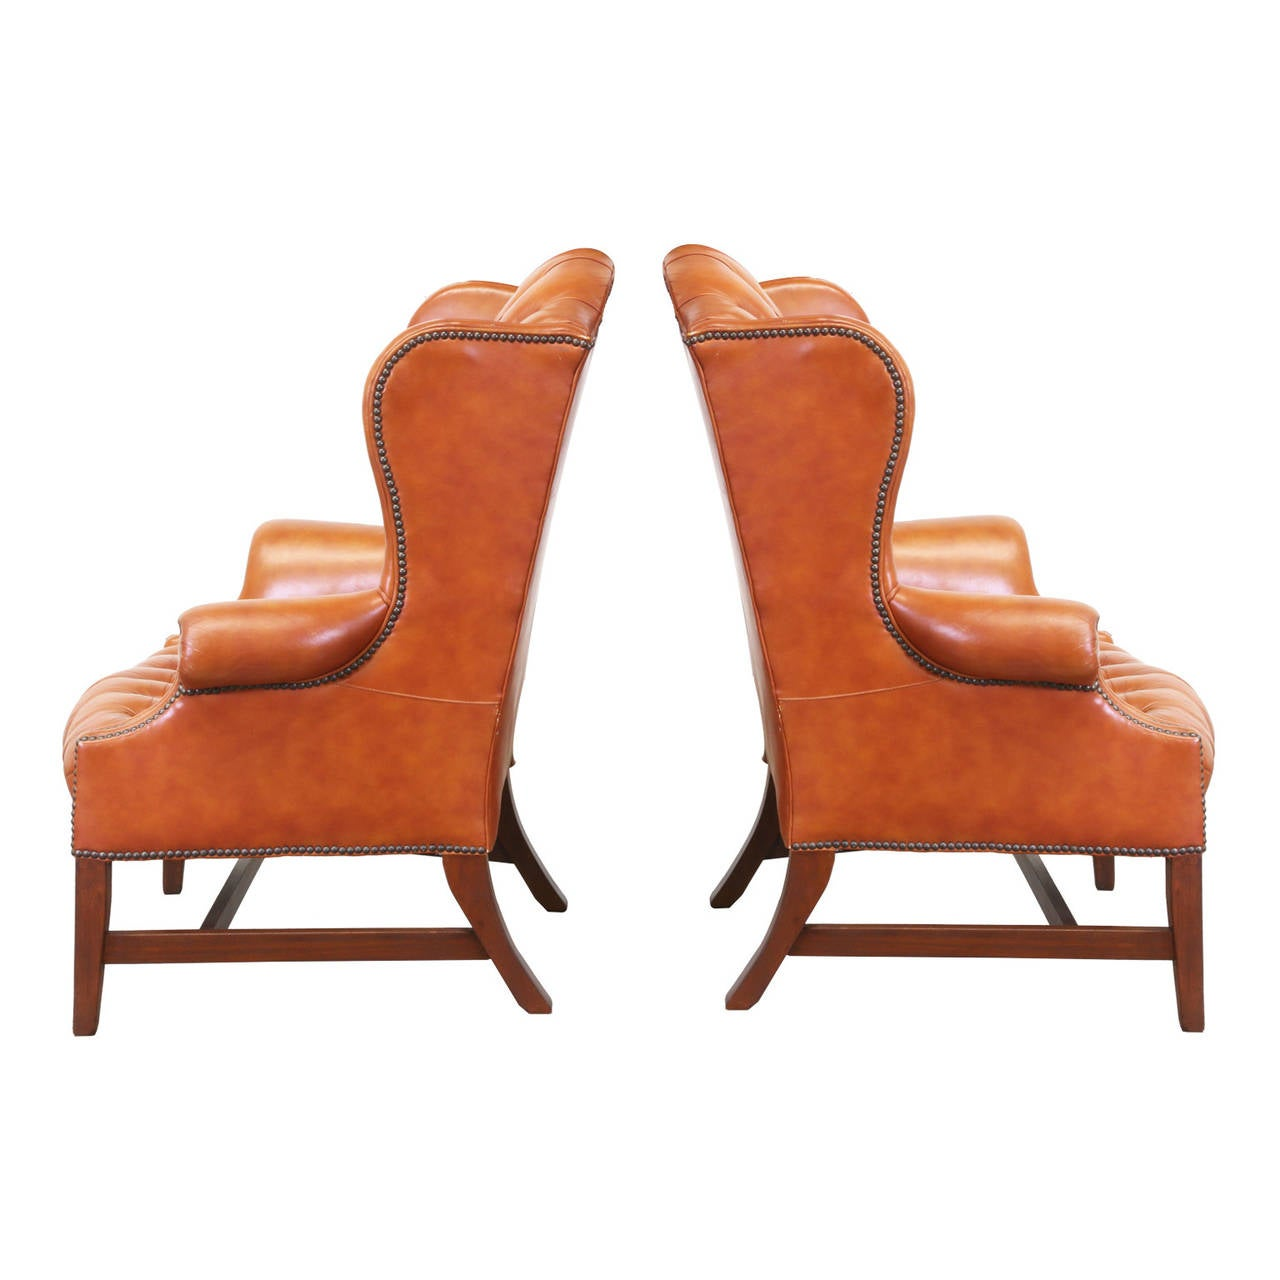 New Image Of Tufted High Back Chair